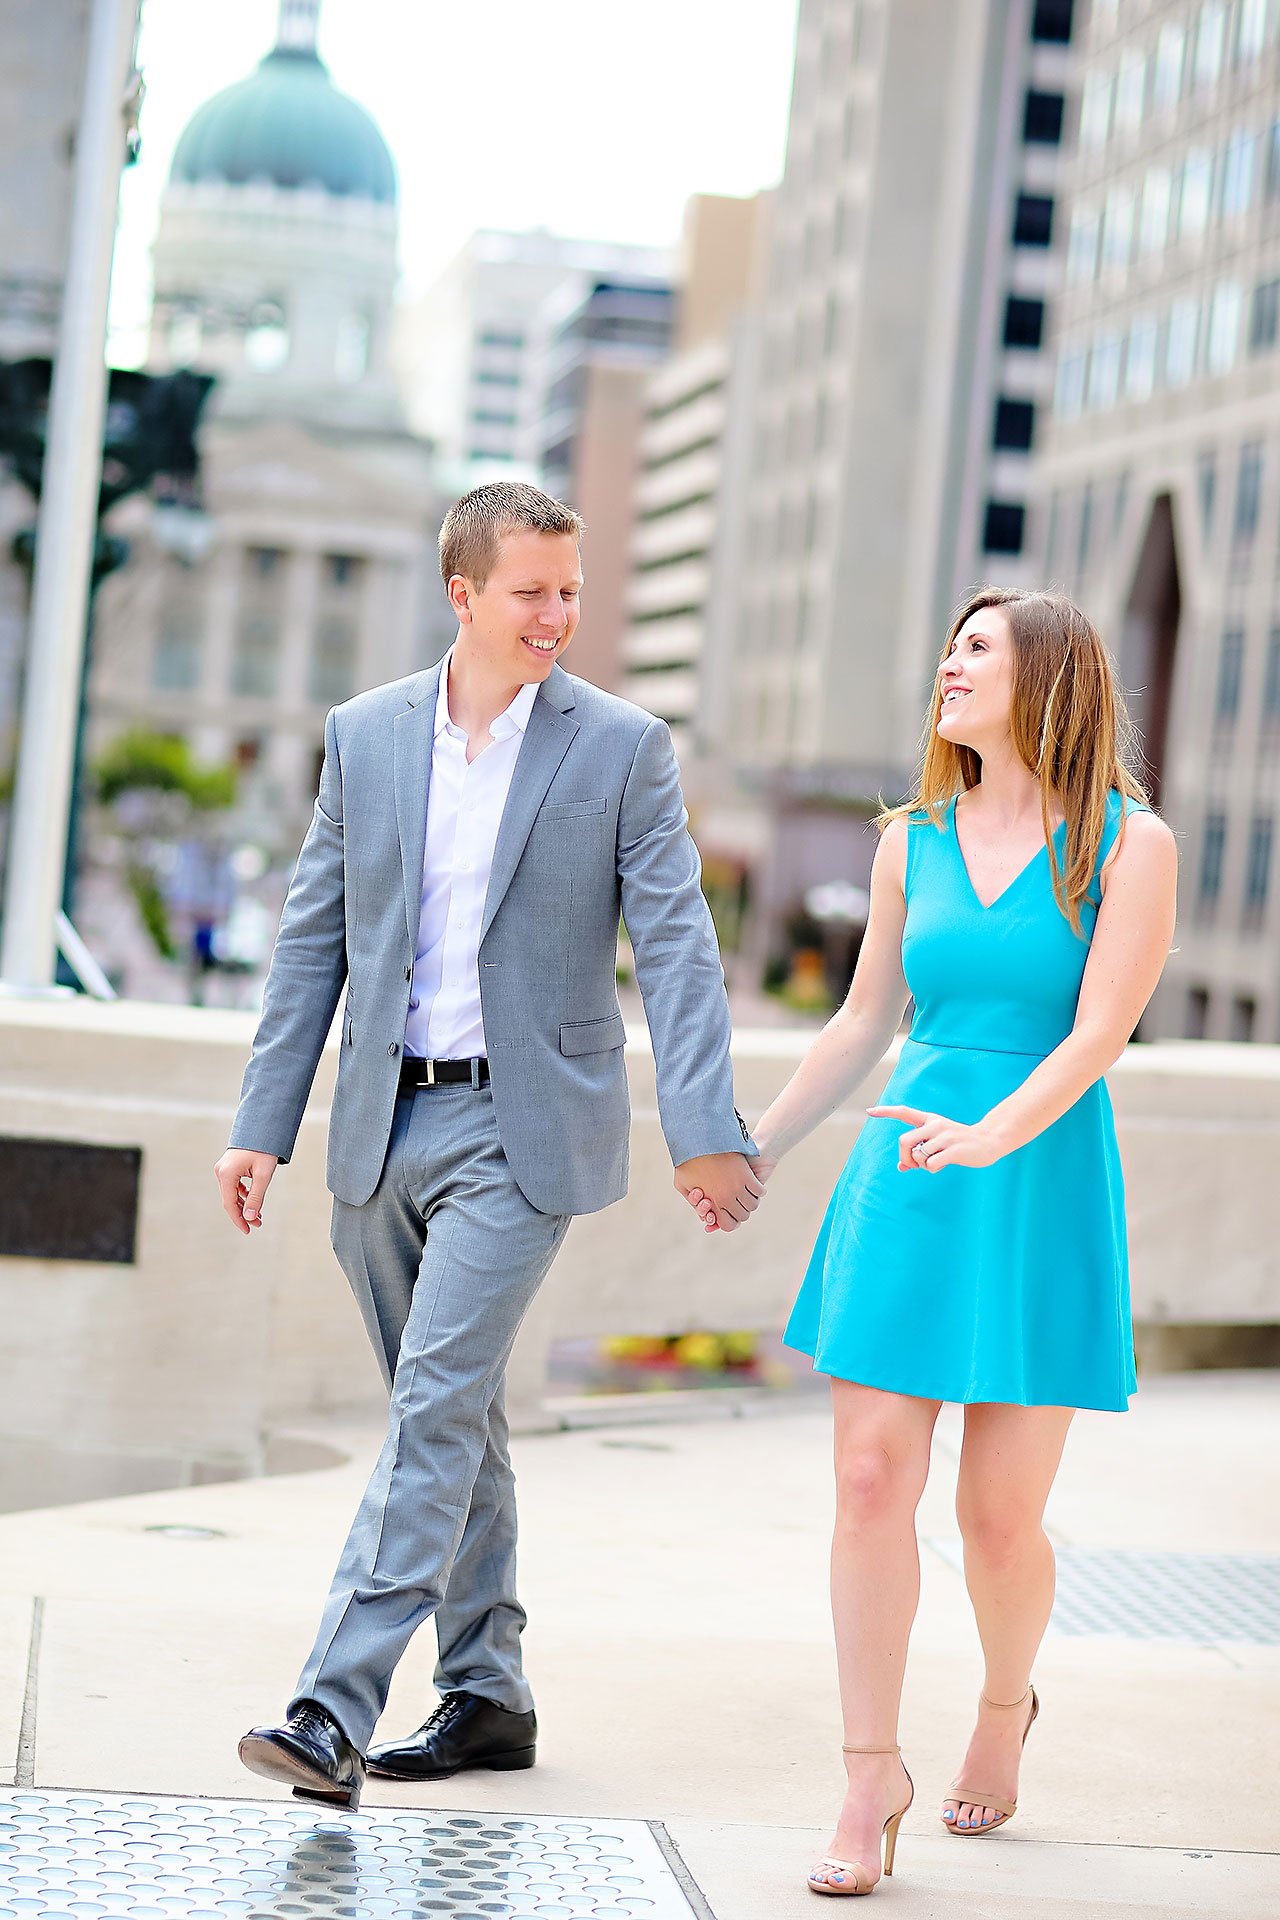 Chelsea Jeff Downtown Indy Engagement Session 089